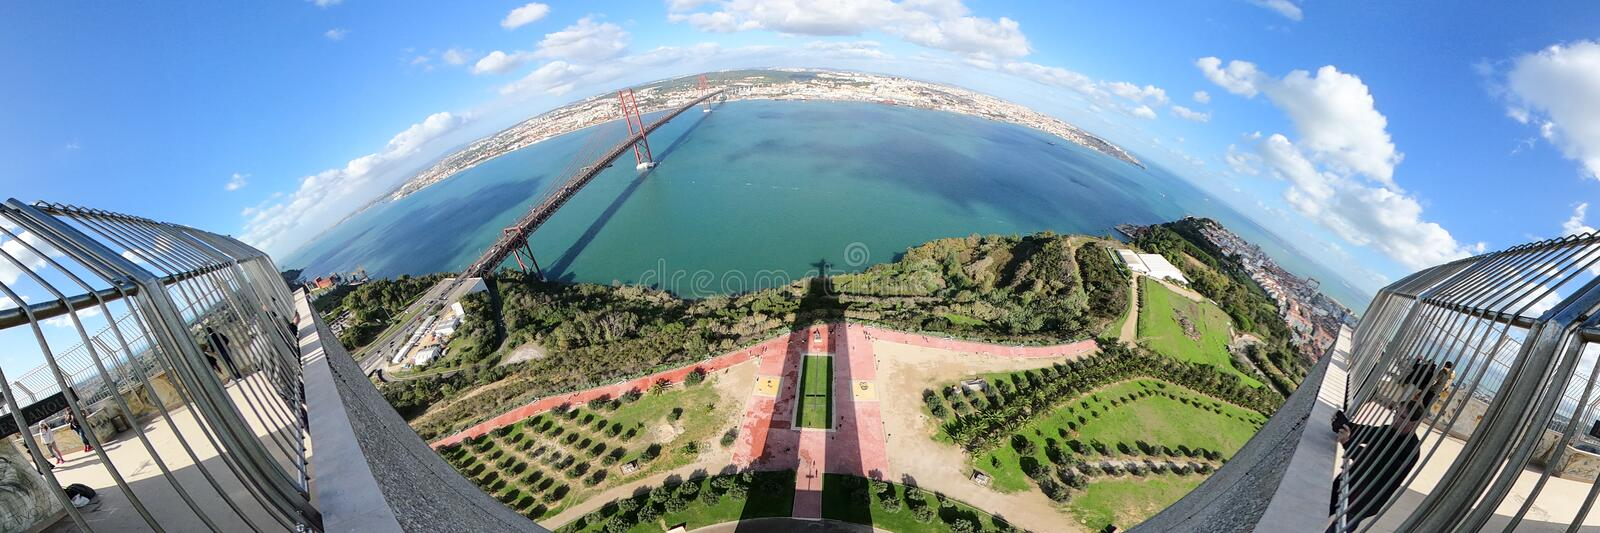 Panoramic aerial view over Shadow of Christ statue in Lisbon Almada royalty free stock photography